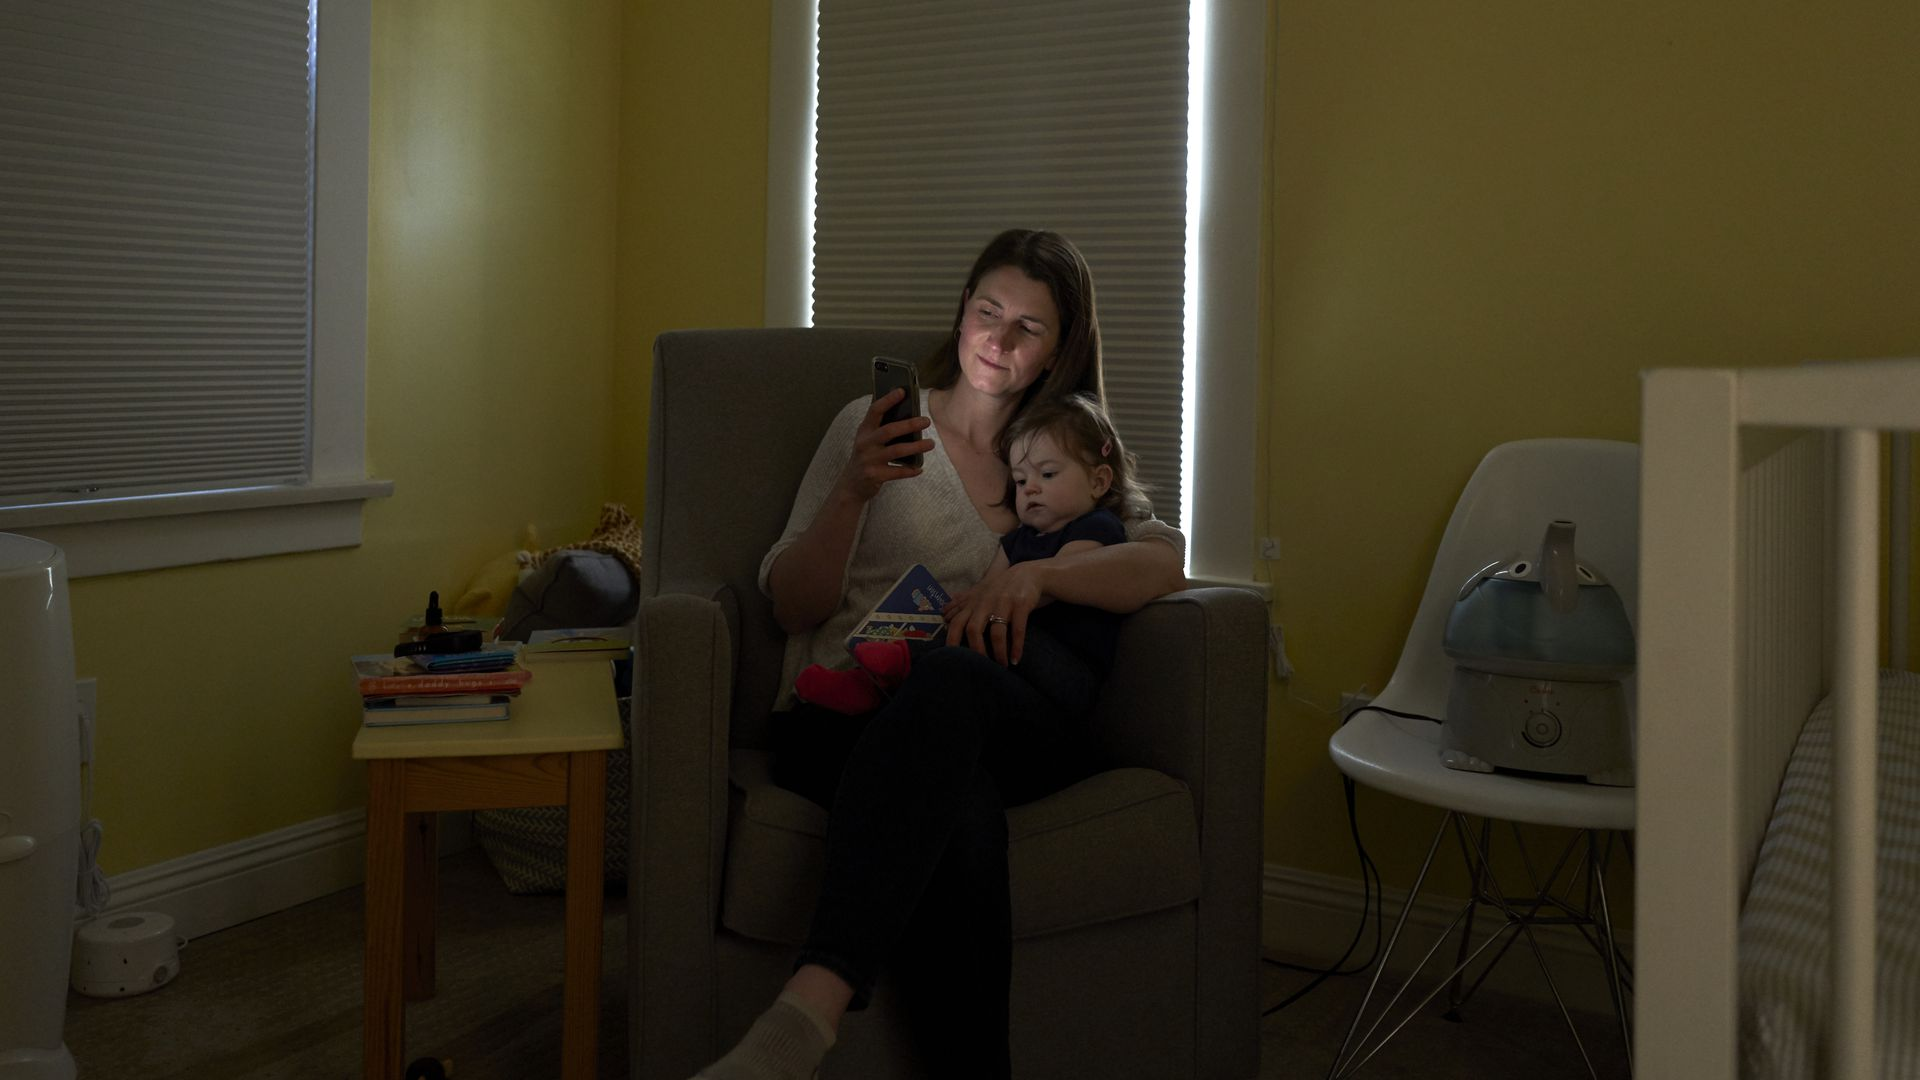 In this image, a mother looks at her phone while holding her infant in her lap in a chair in the corner of a nursery.